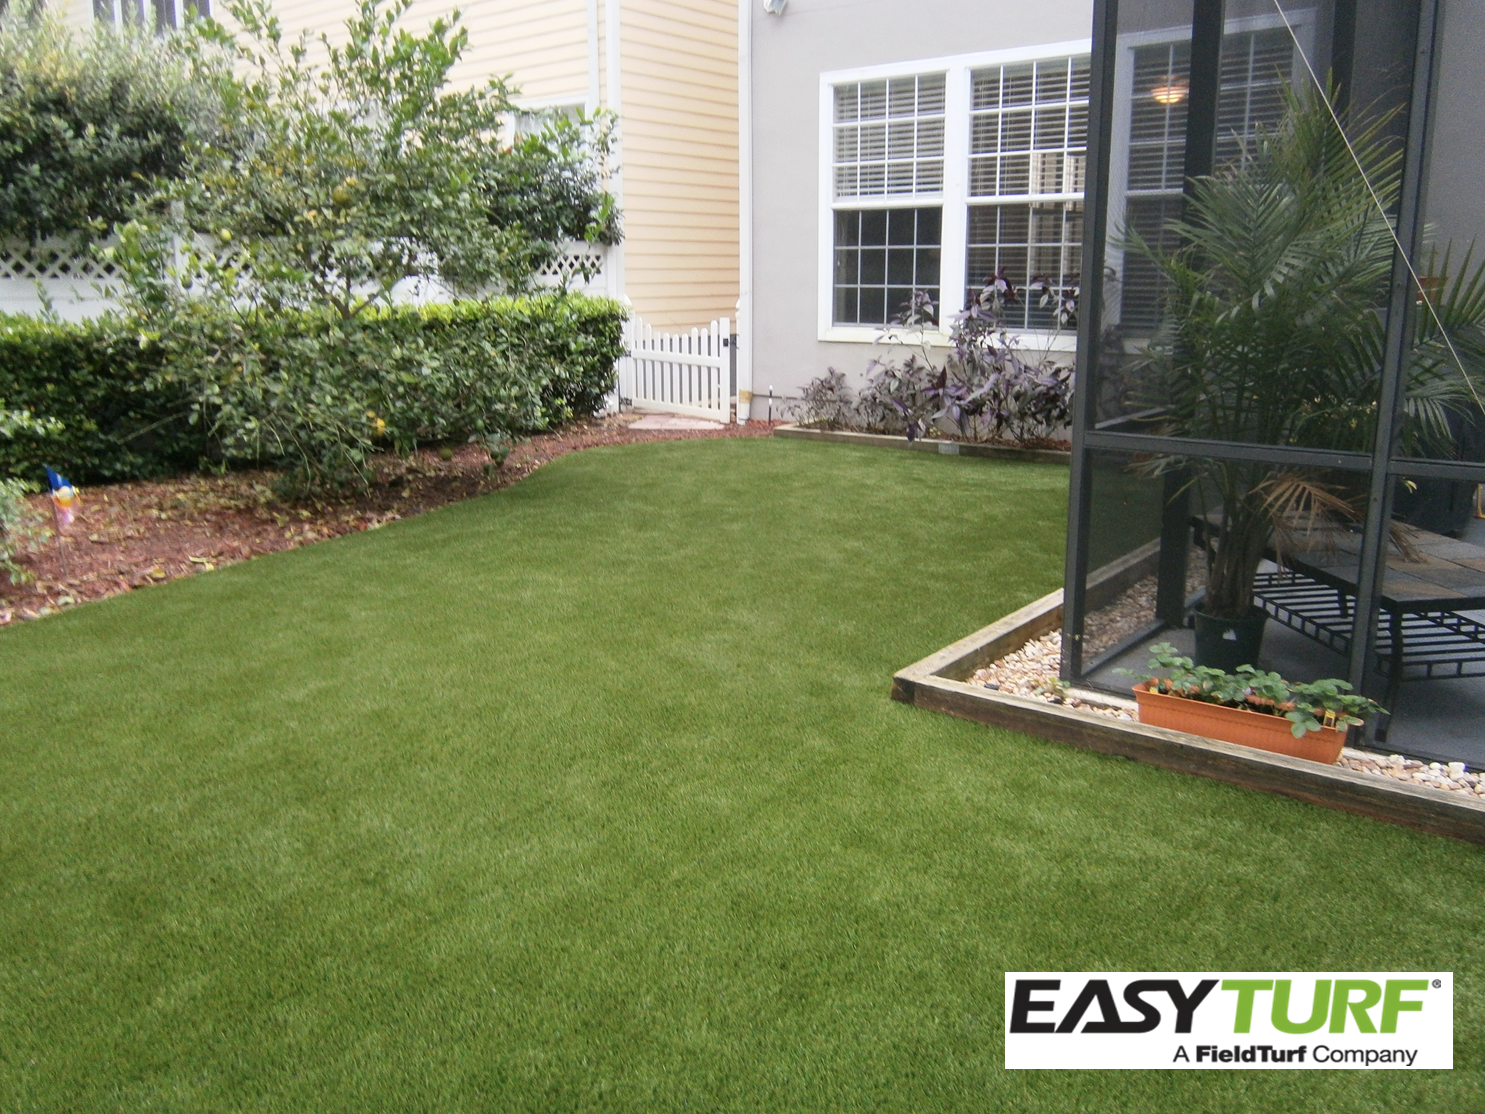 Residential Lawns Easyturf Lawn Patio Outdoor Decor